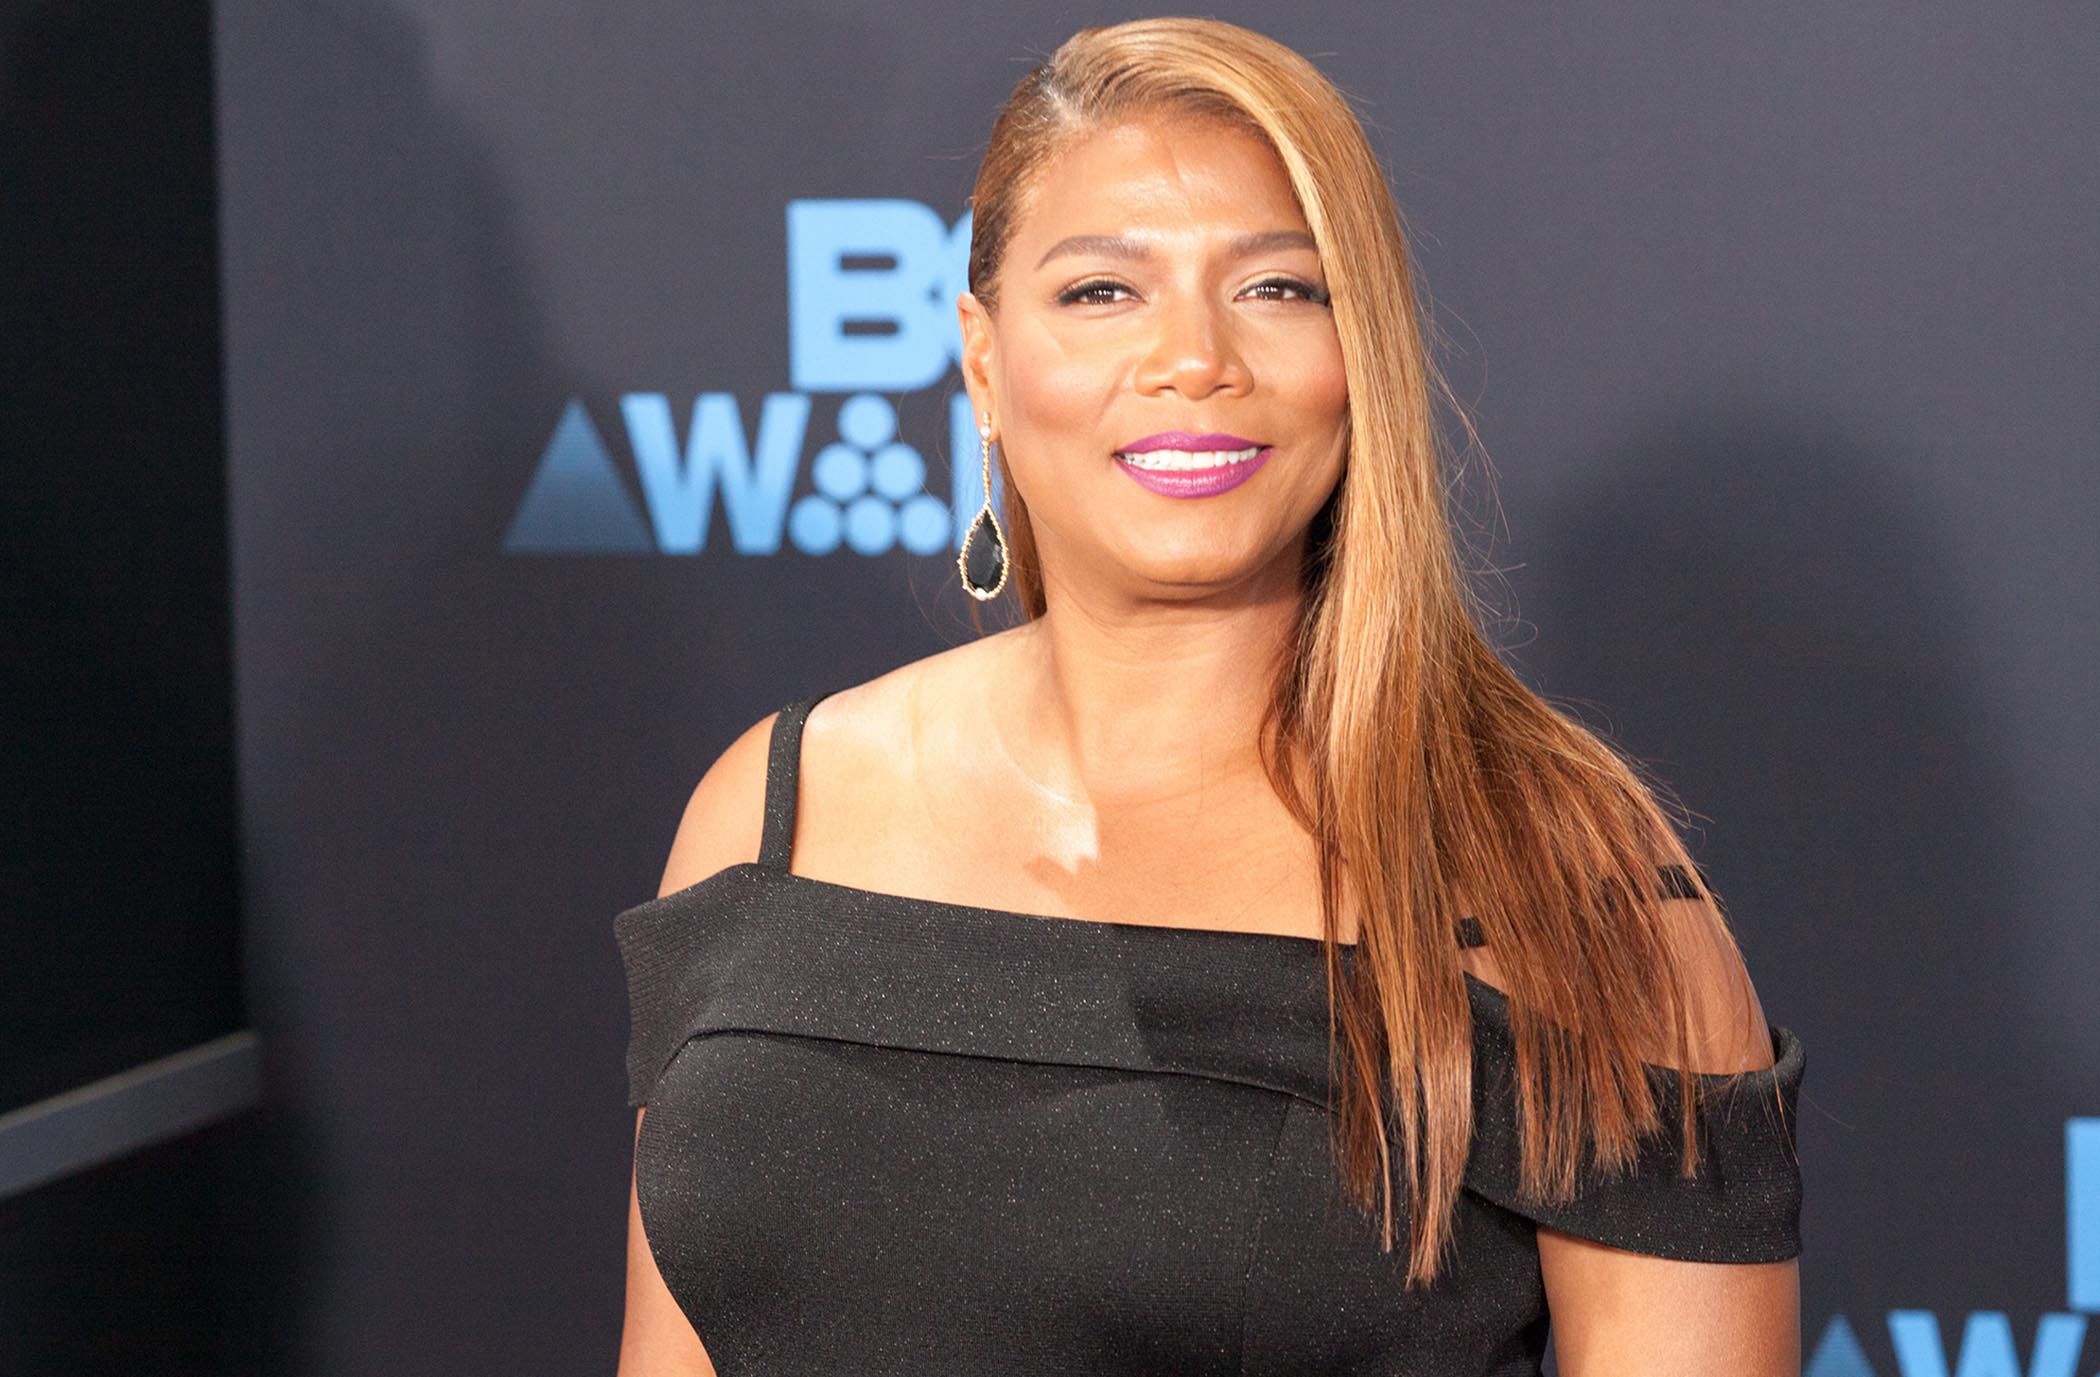 Whether in dramatic, musical, or comedic roles, Latifah has been laying down some iconic performances since the 90s. Here are ten of the times Queen Latifah slayed her performance, ranked from decent to crown worthy.